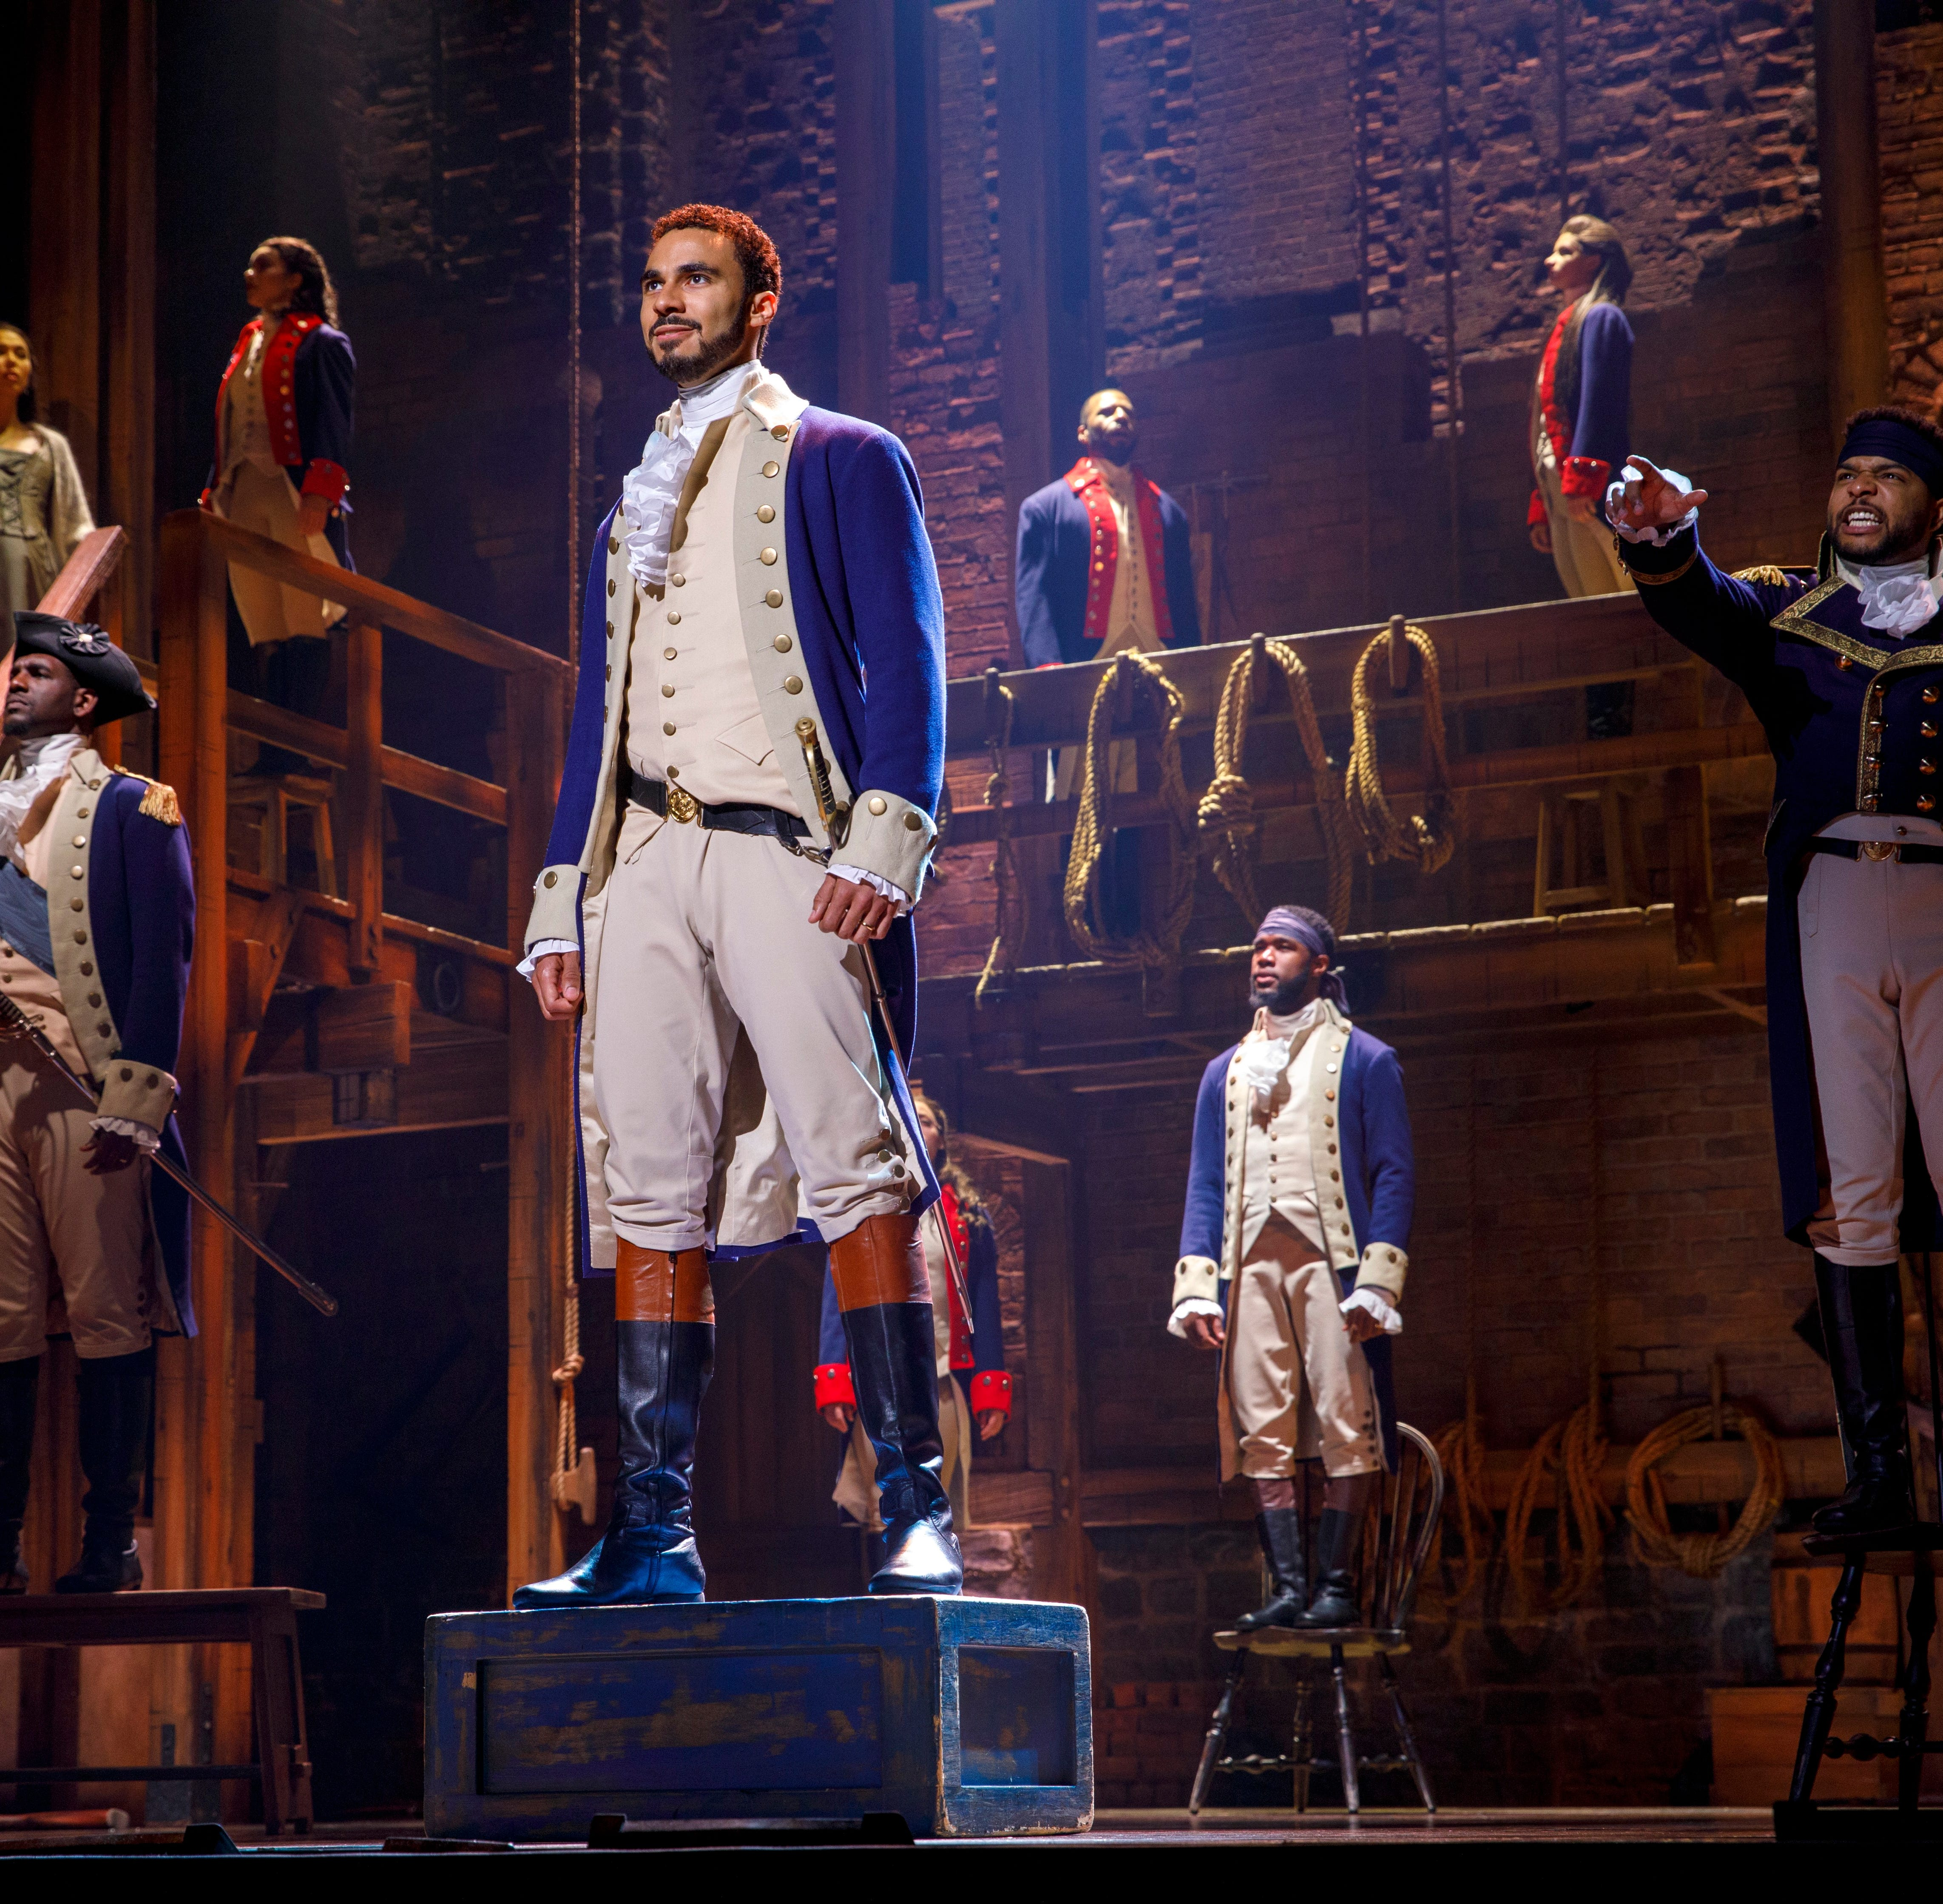 Couple spent $514 on 'Hamilton' tickets, but didn't have seats